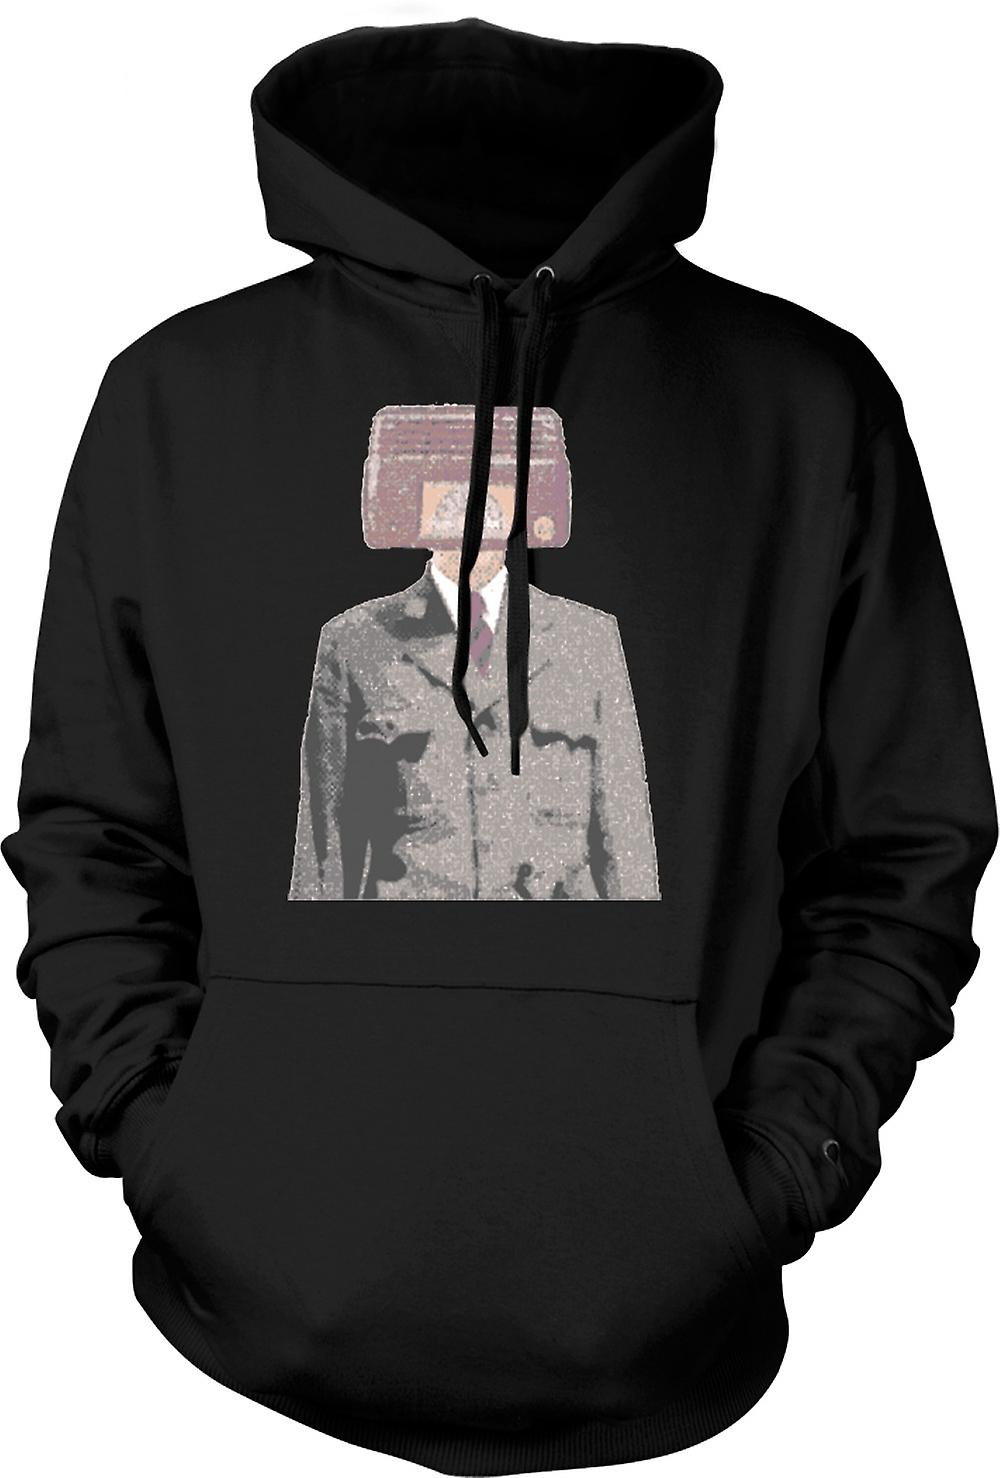 Mens Hoodie - Radiohead - Pop Art - Design